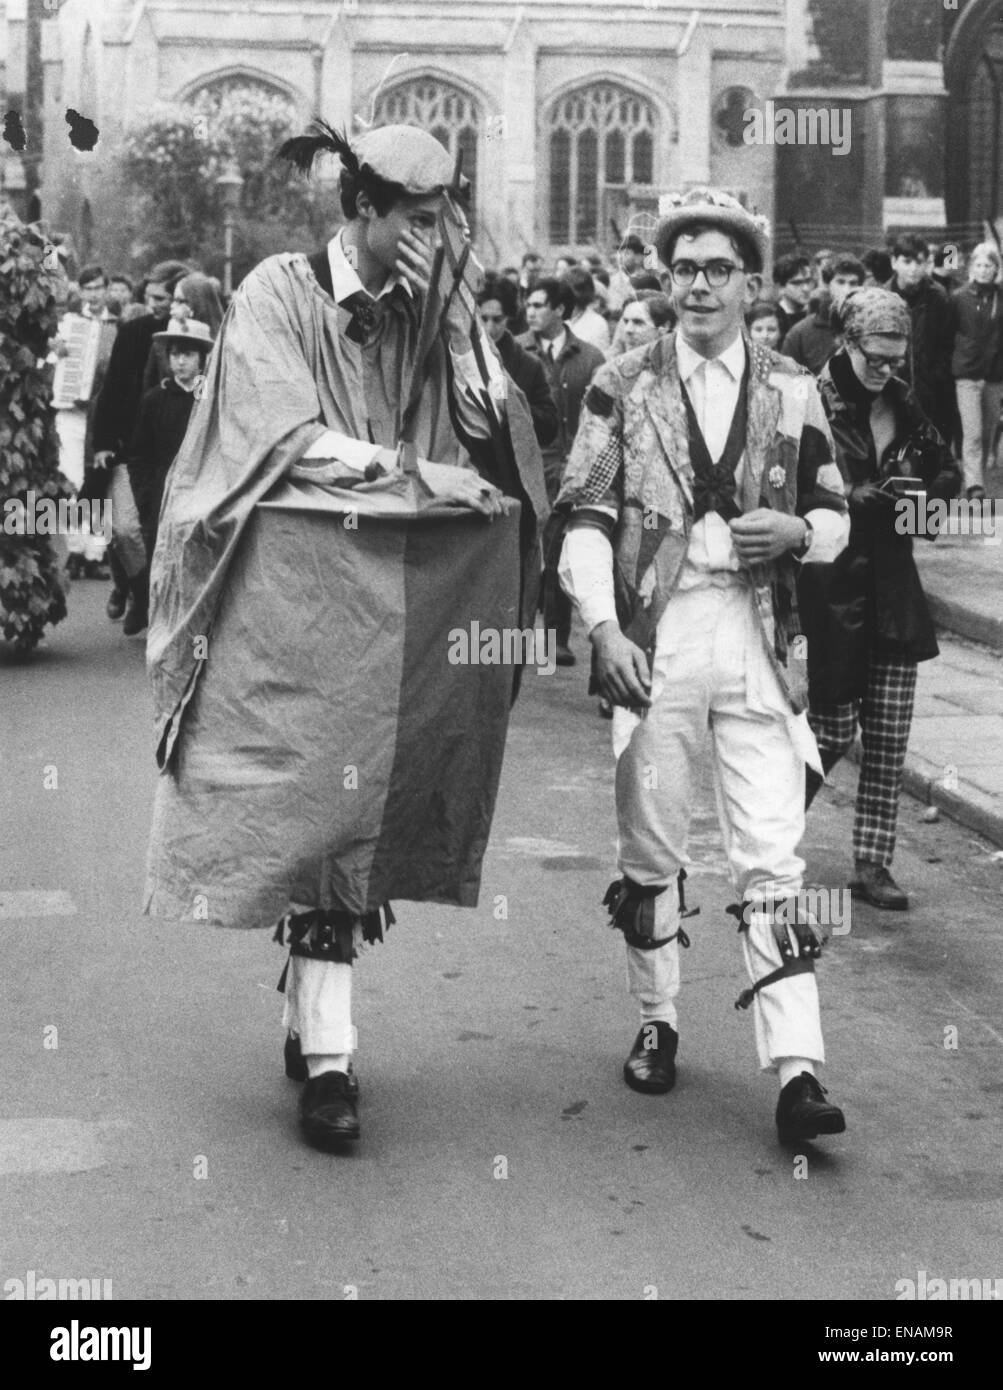 FILE PHOTOS: Oxford, Oxfordshire, UK. 1st May, 1968. Oxford May Day. Morris dancers dress in colourful costumes Stock Photo